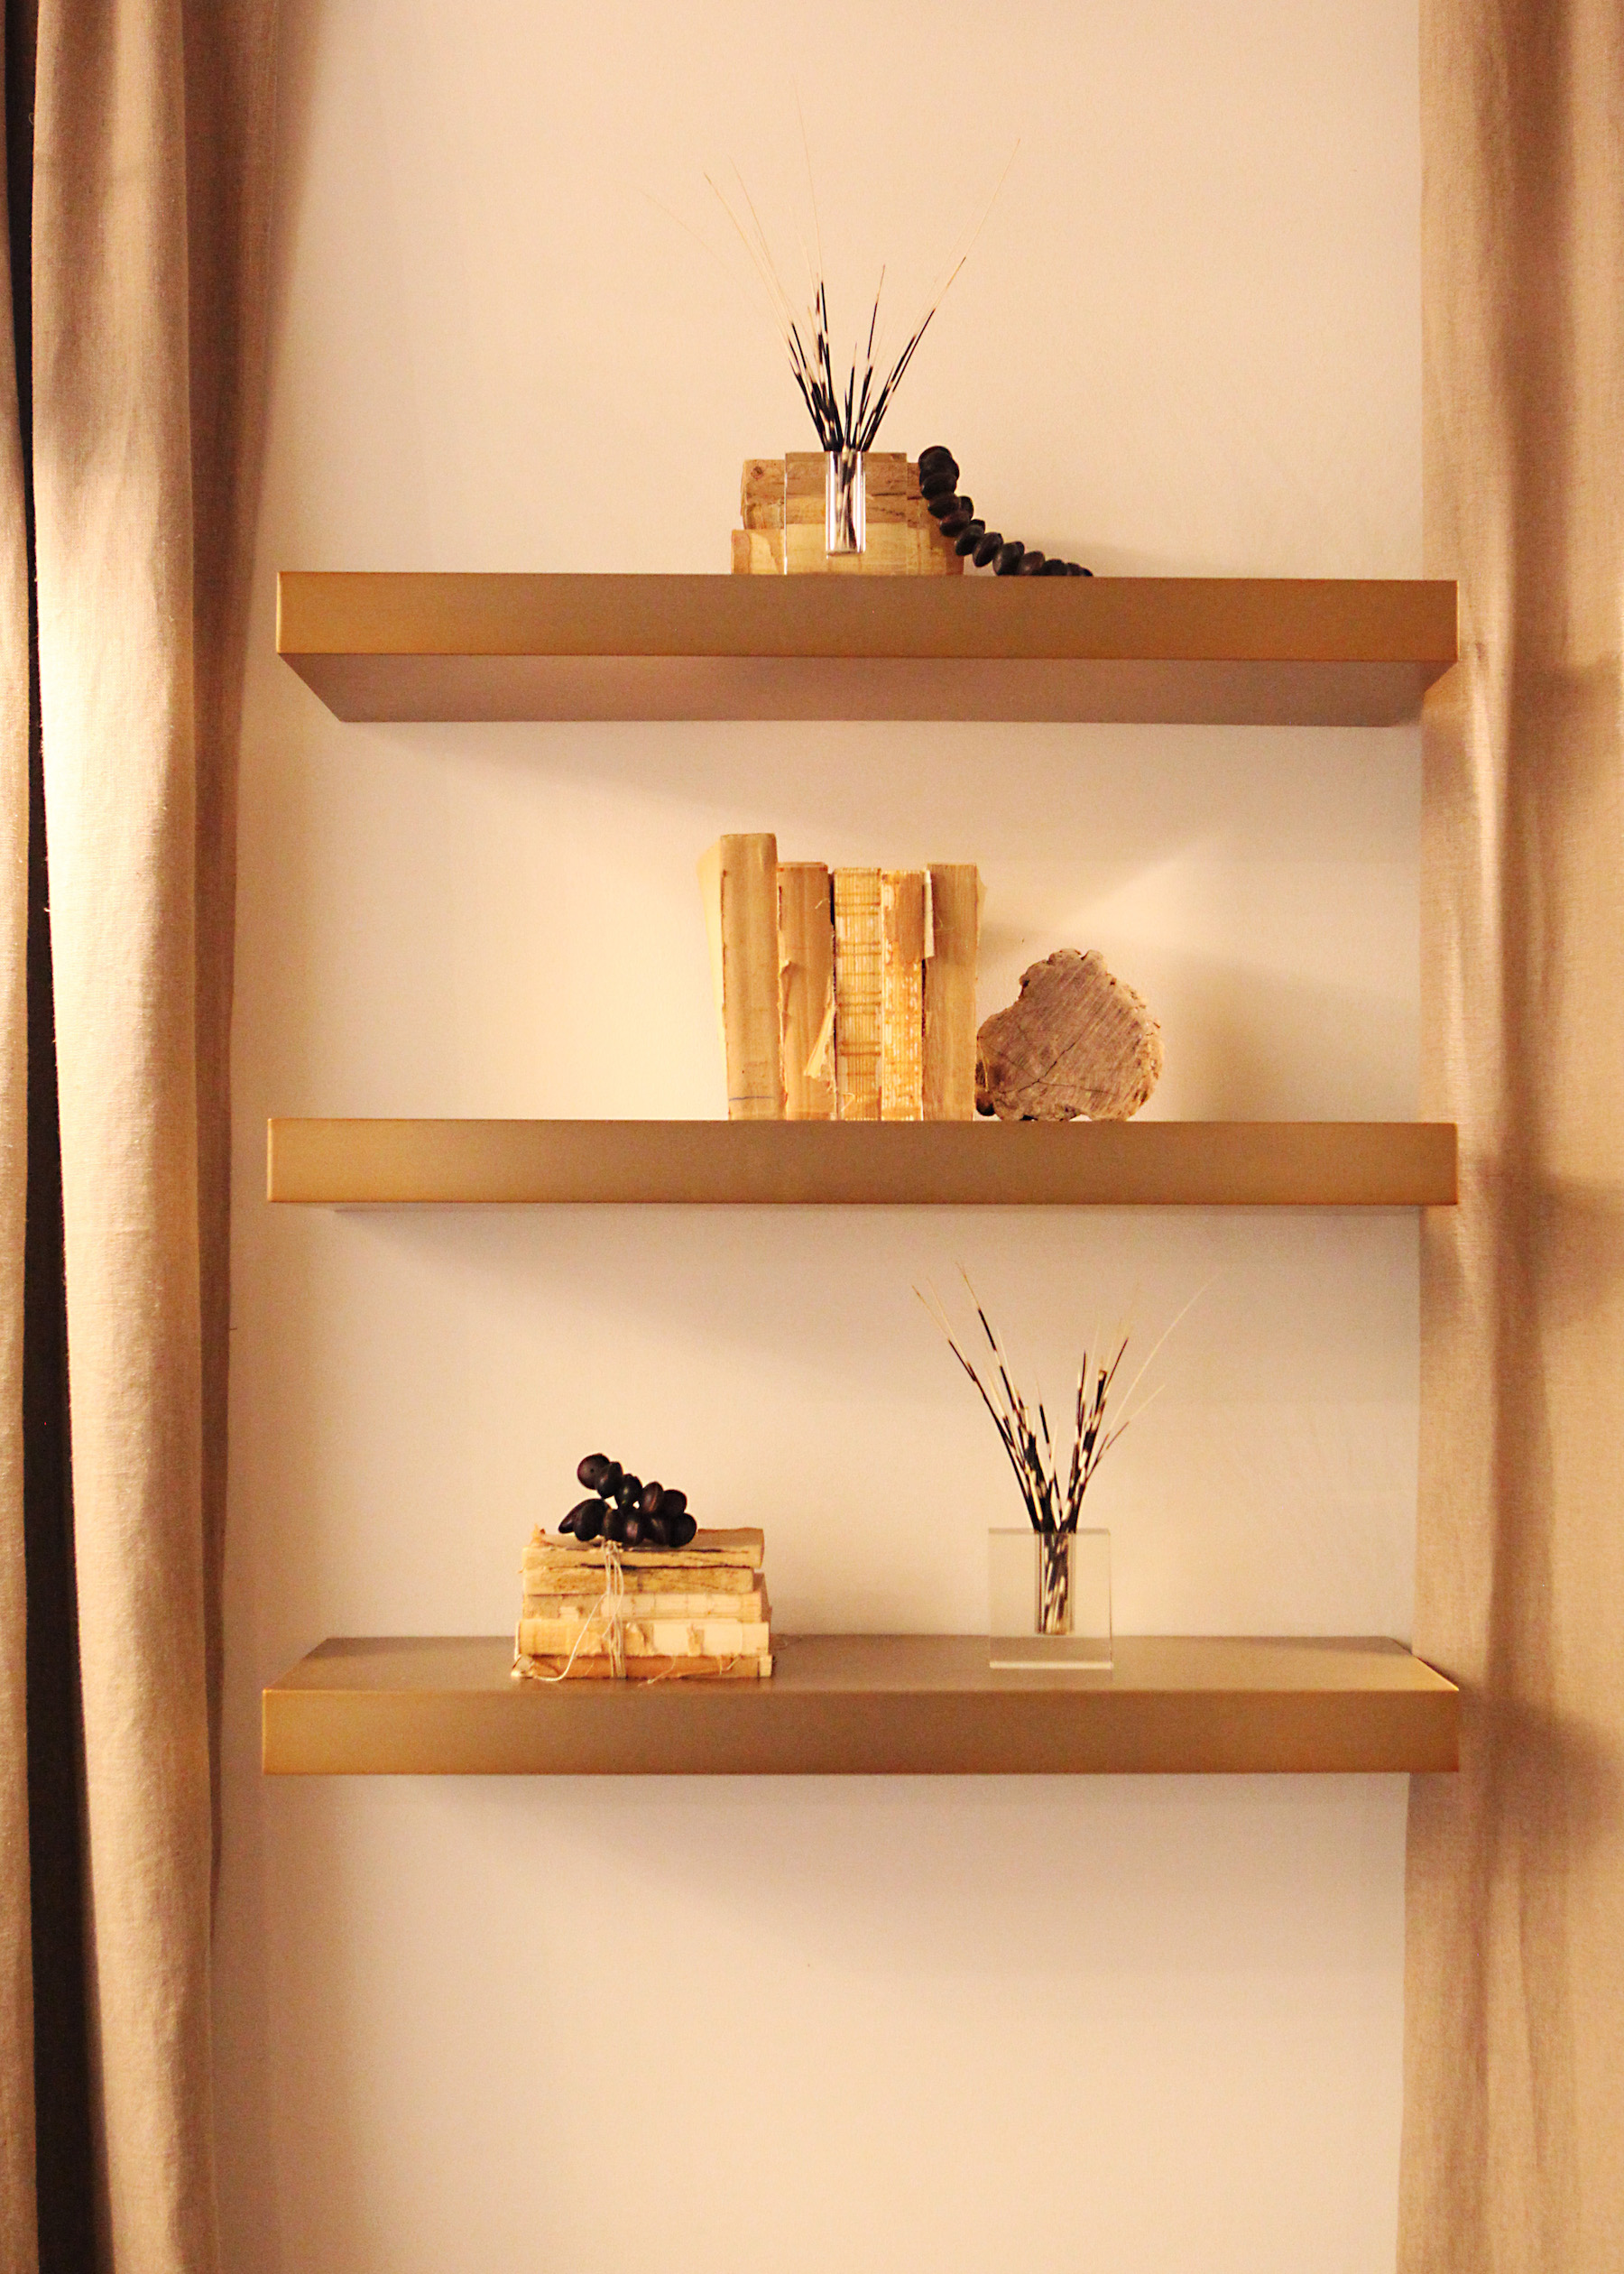 Bookshelves layered with accessories